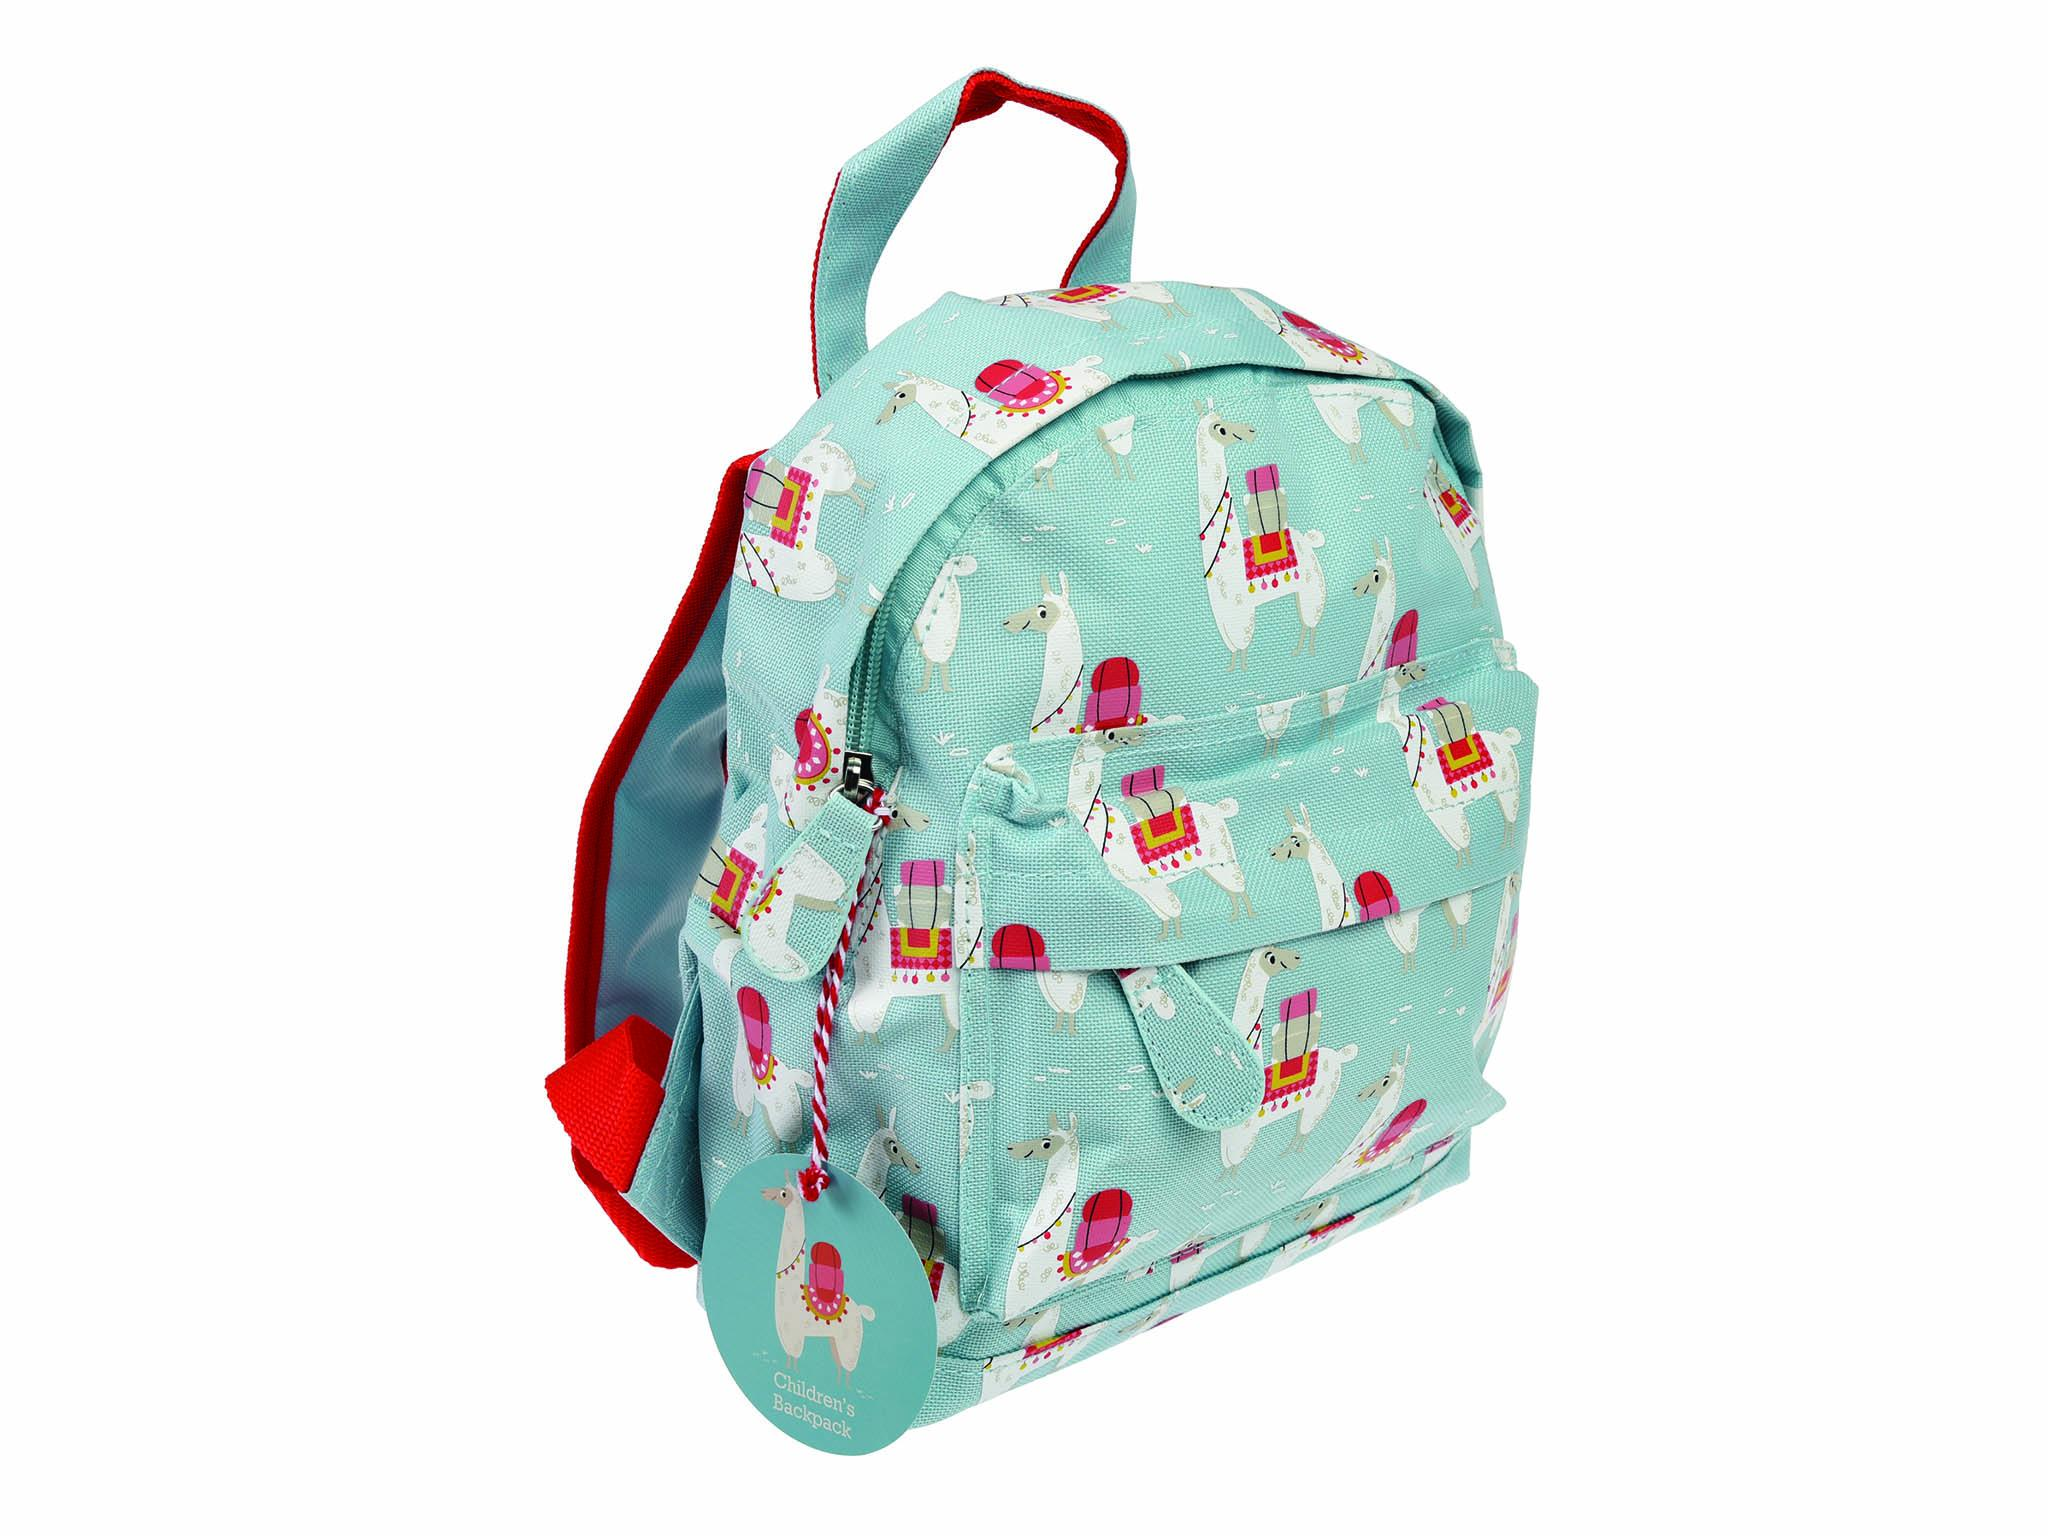 Funny Boys Girls Backpacks for High Schoolers Bags Rucksack Satchel Swimming